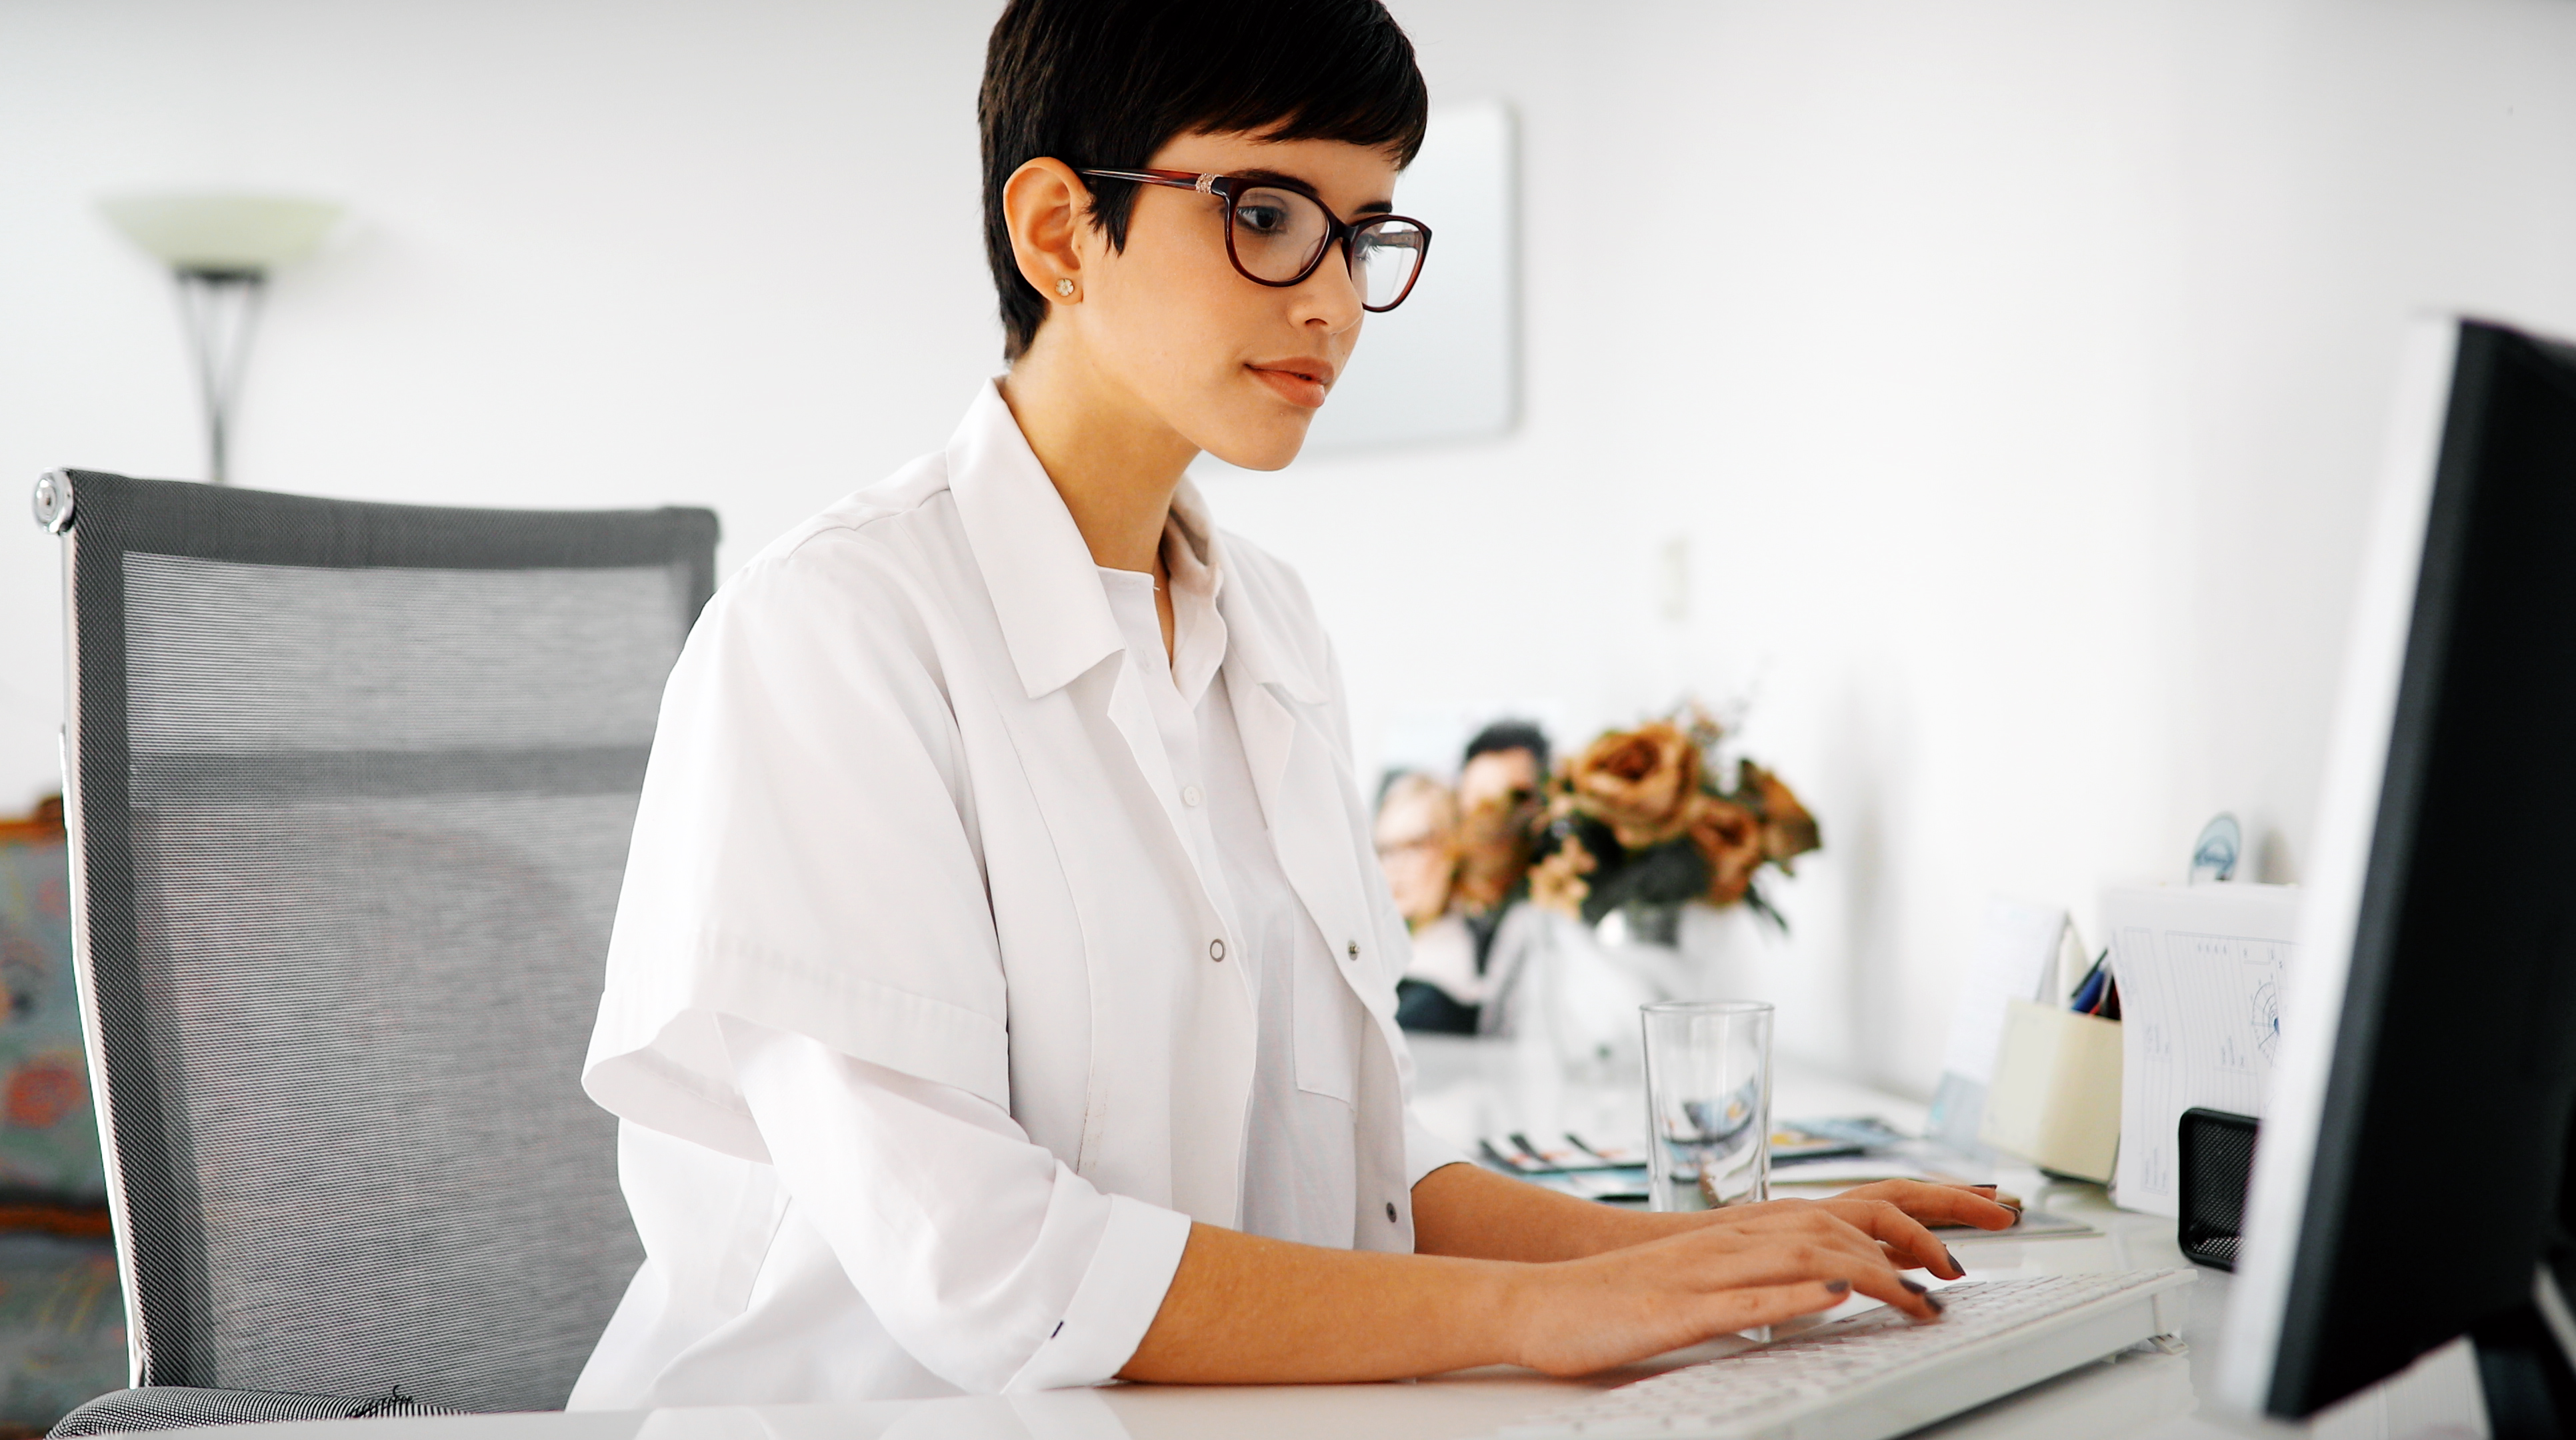 The Rise of Artificial Intelligence in Medical Transcription